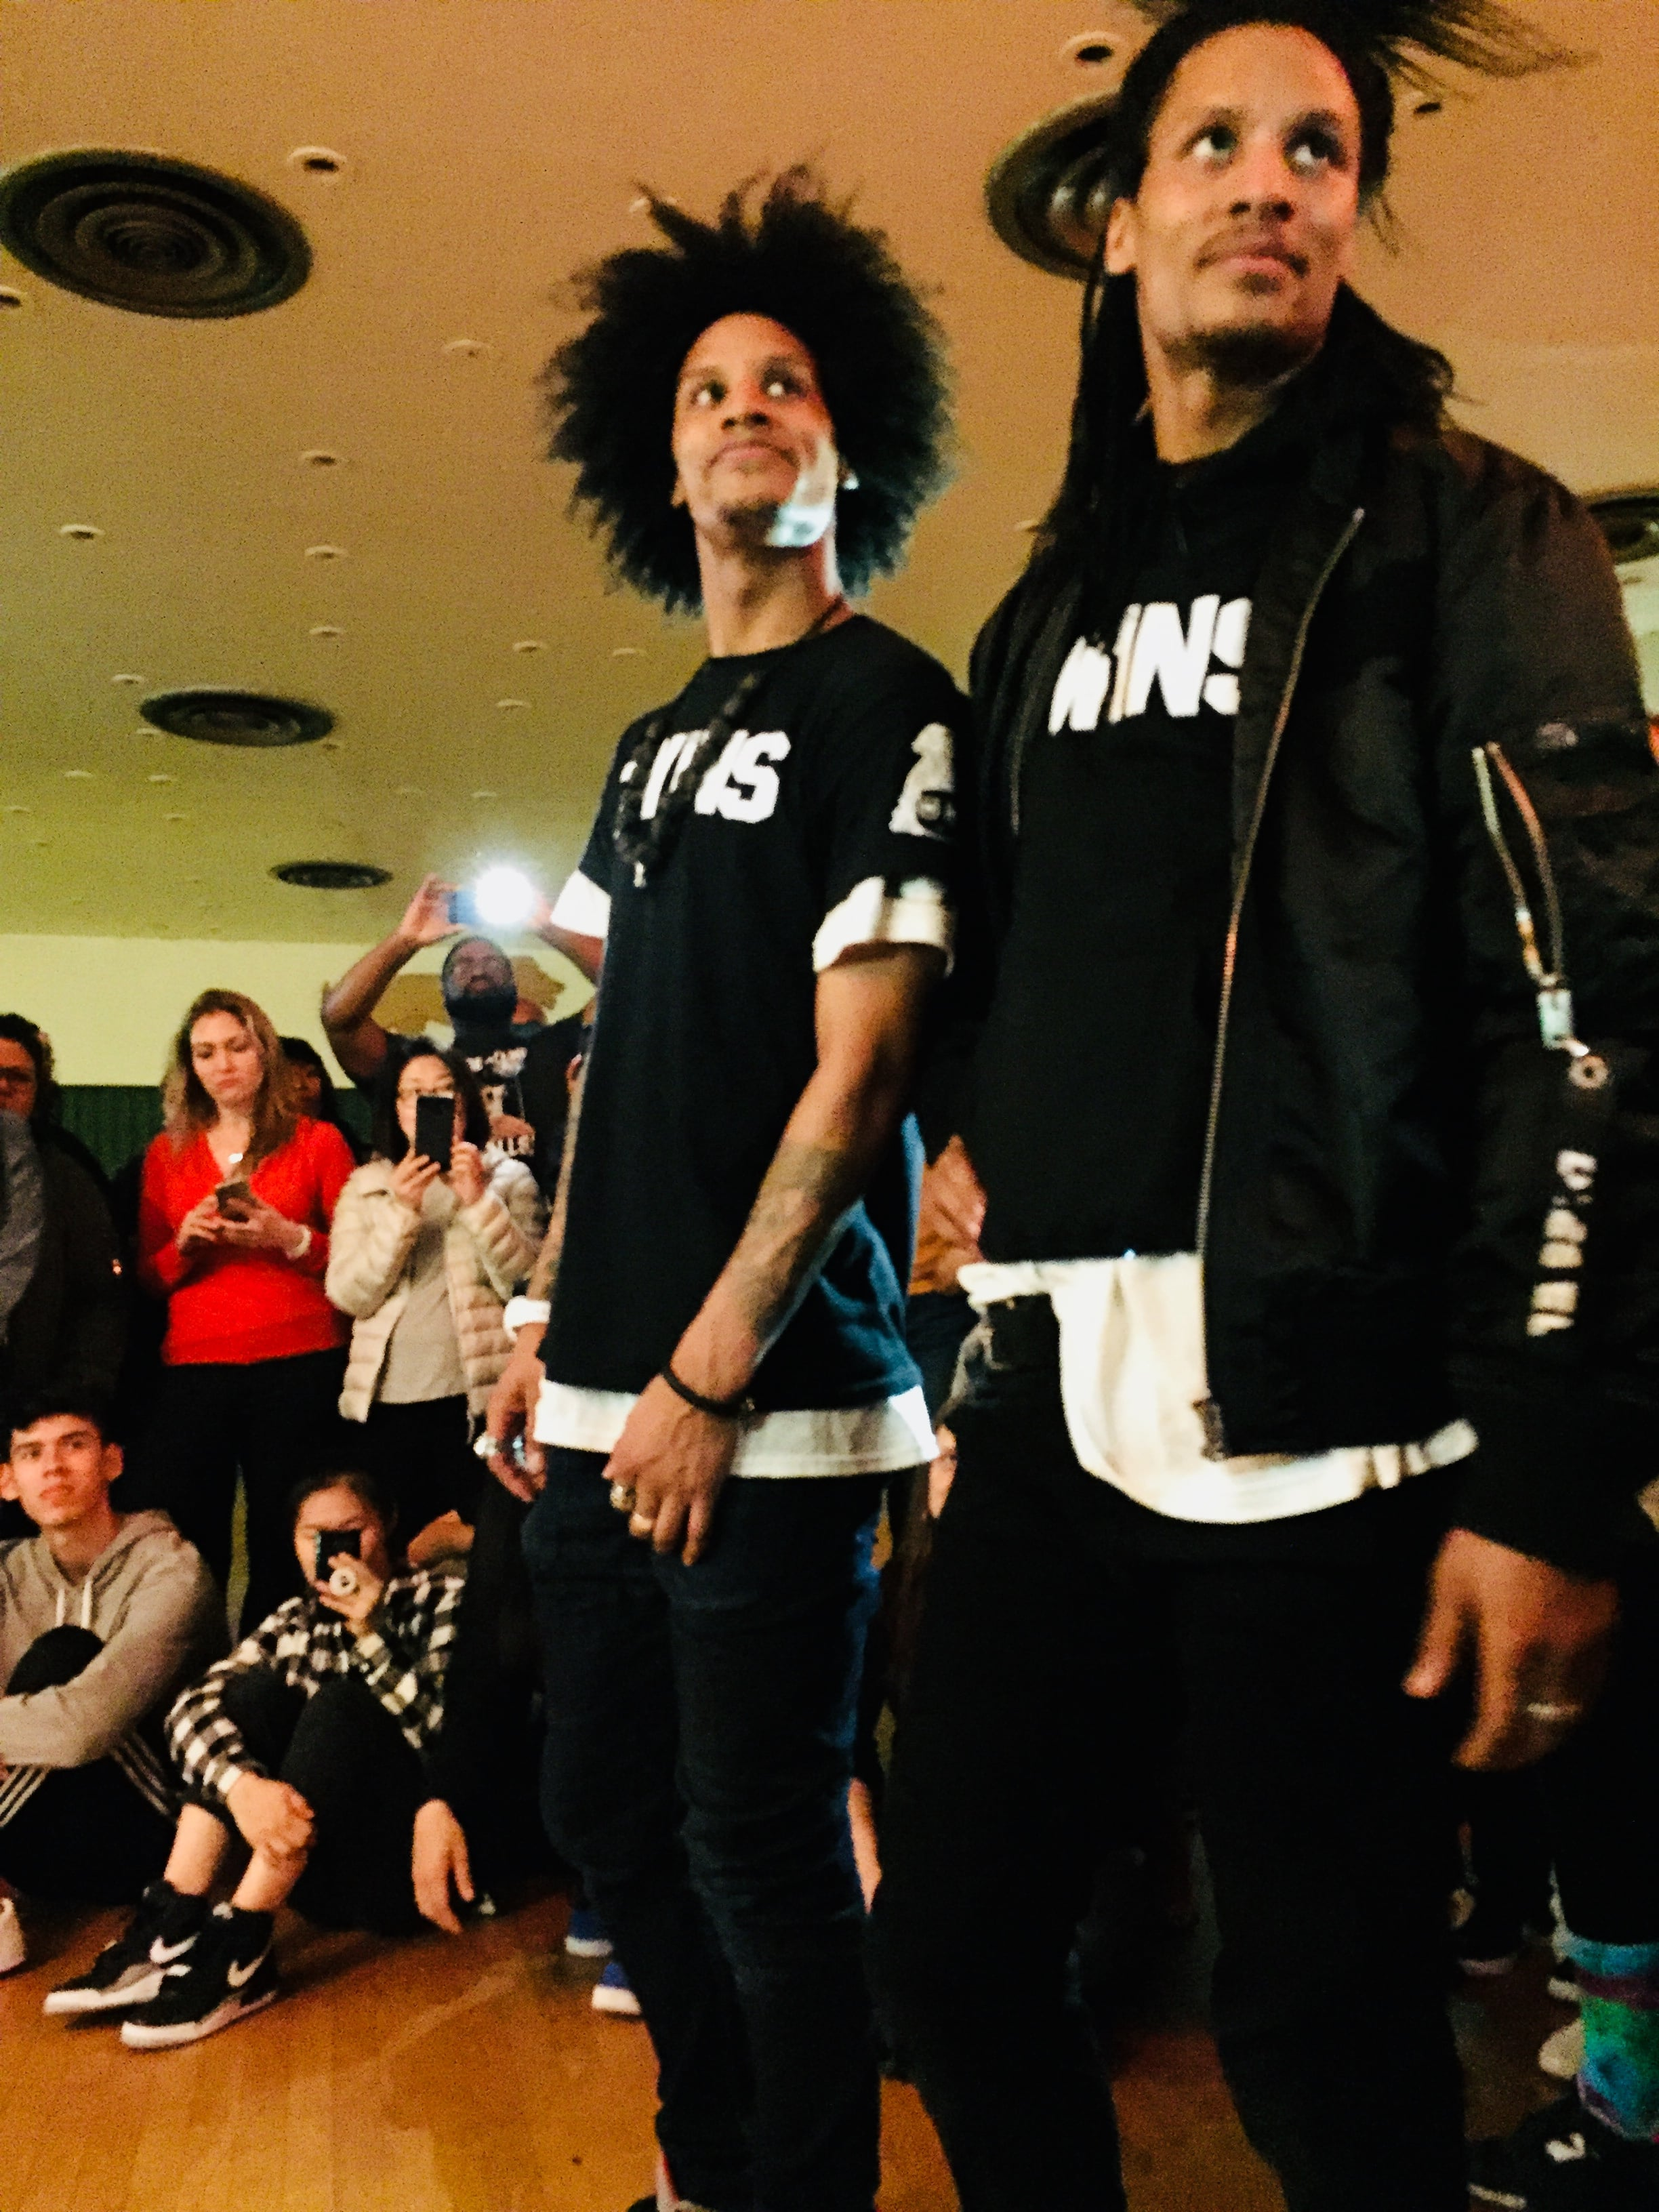 Les Twins French Actor, Dancers, Choreographers, Producers, Models, Designers